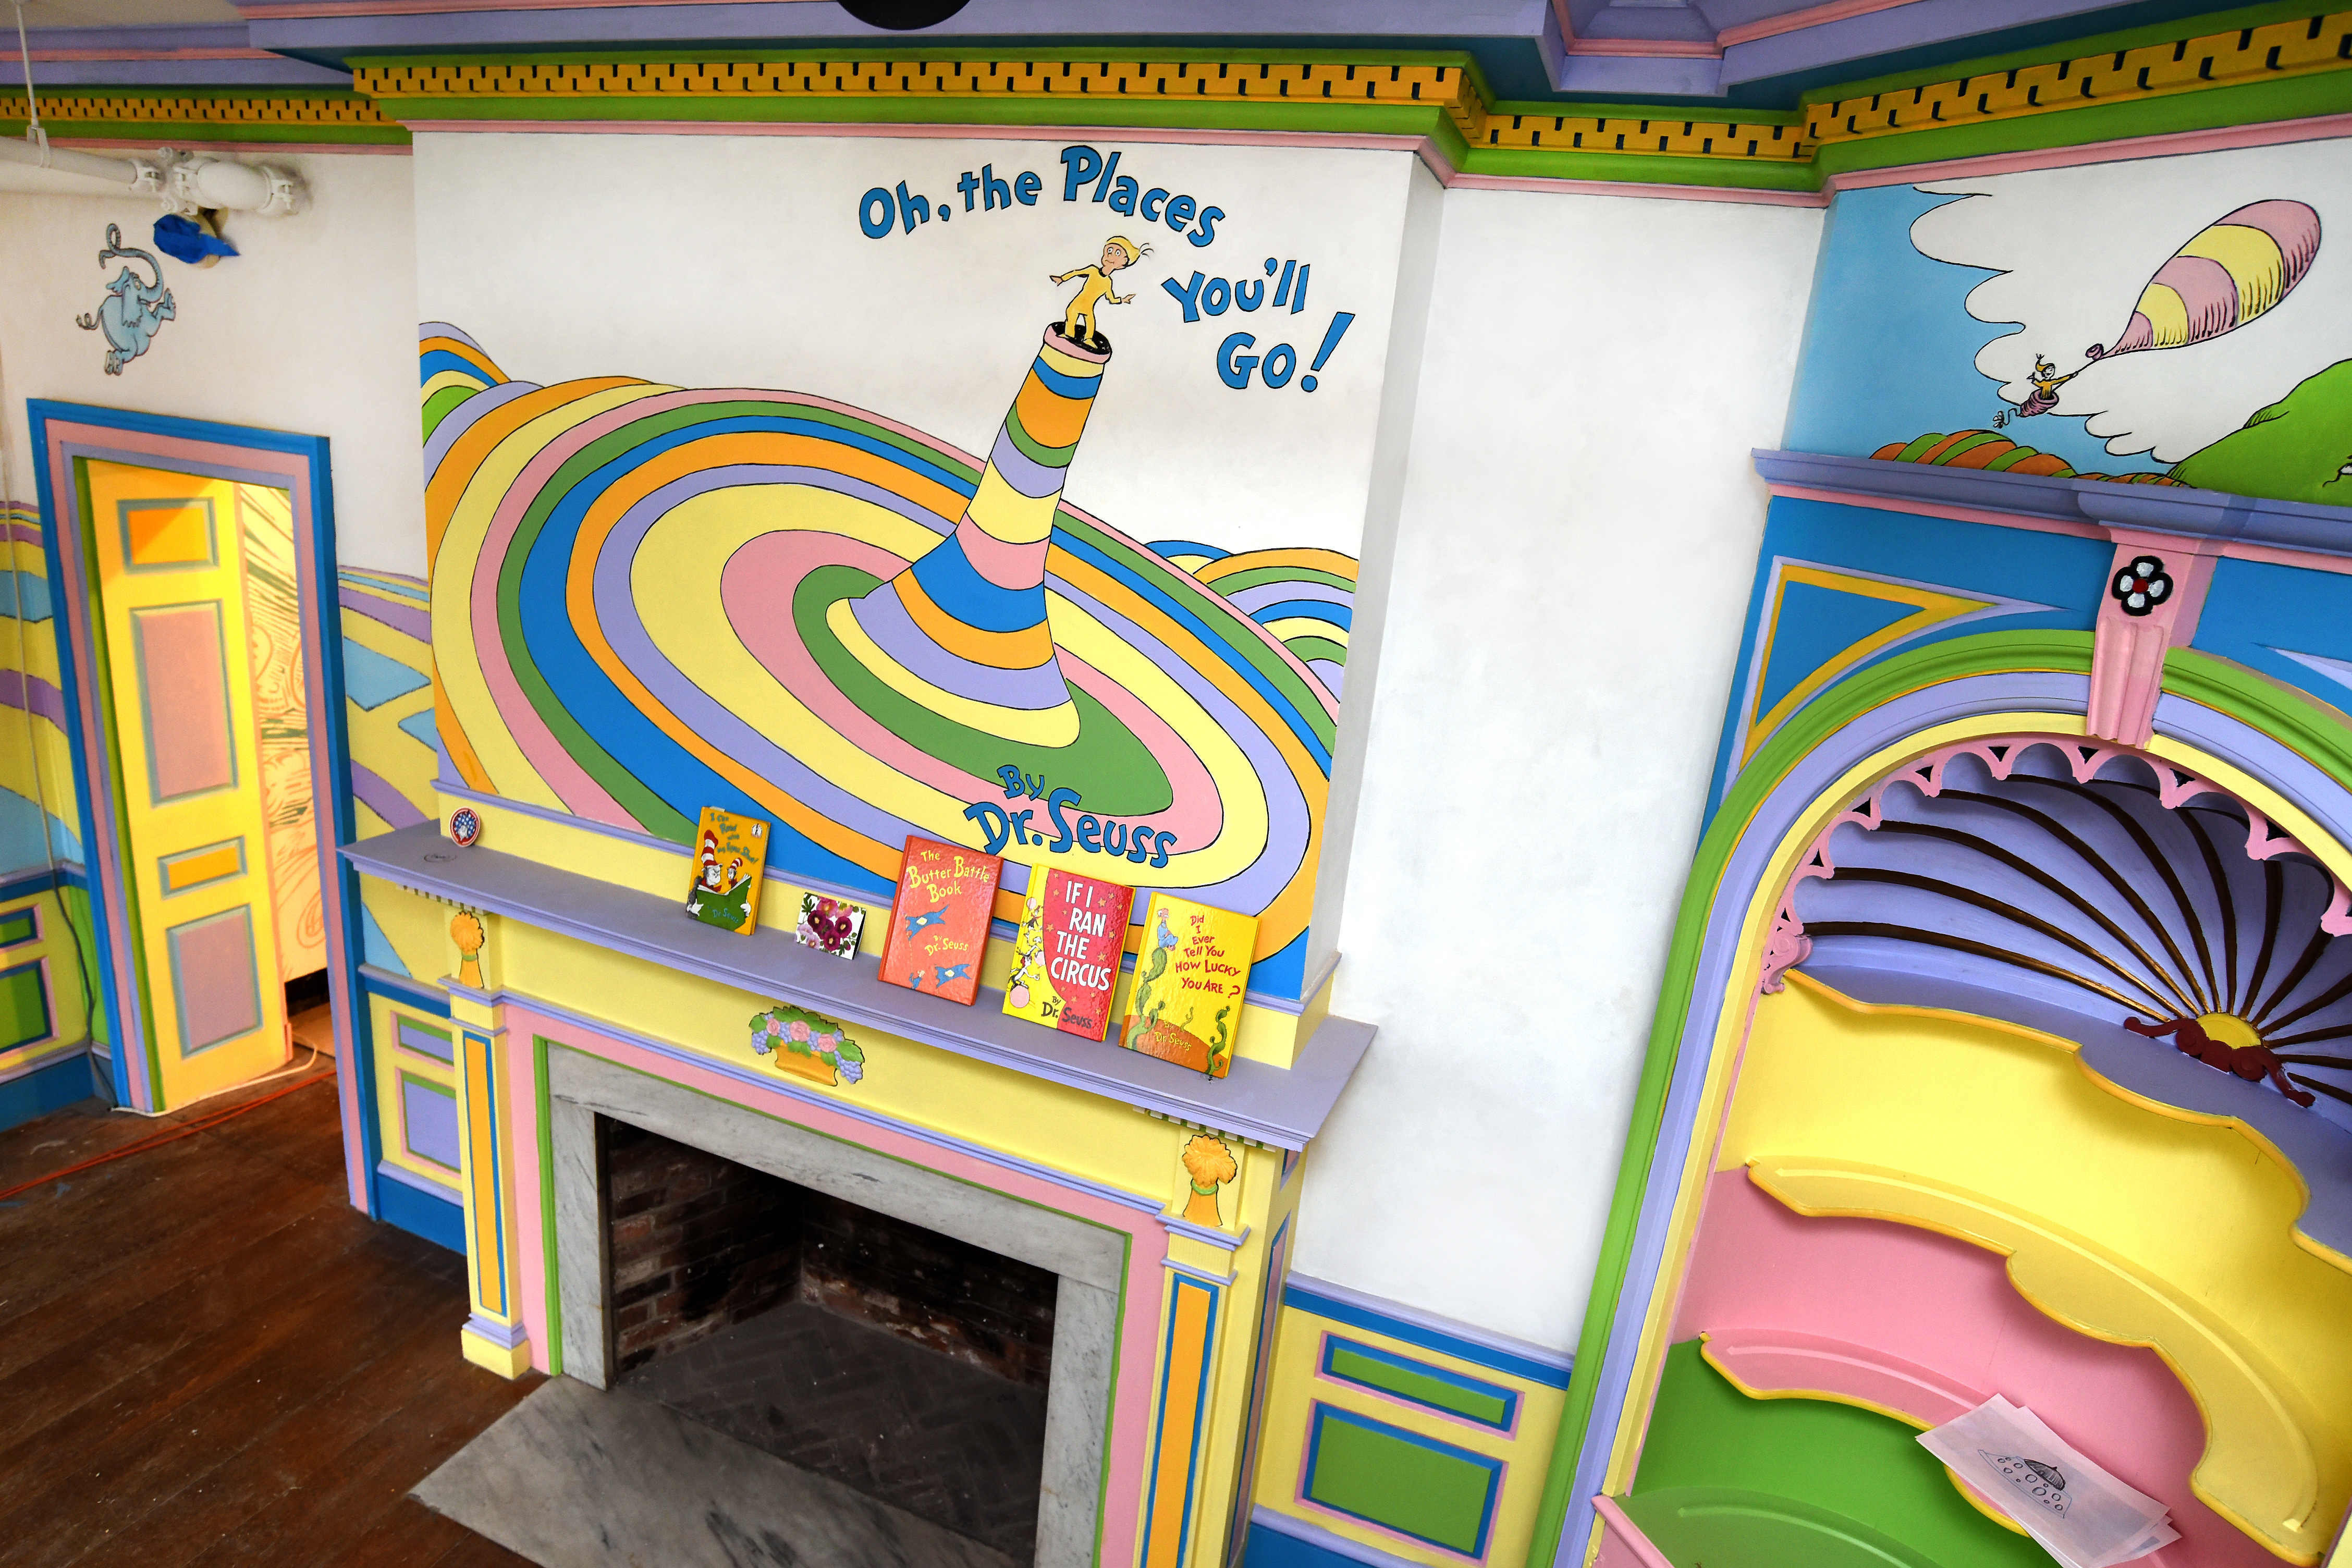 Oh, The Places You'll Go is one theme in the museum, which focuses on Dr Seuss.